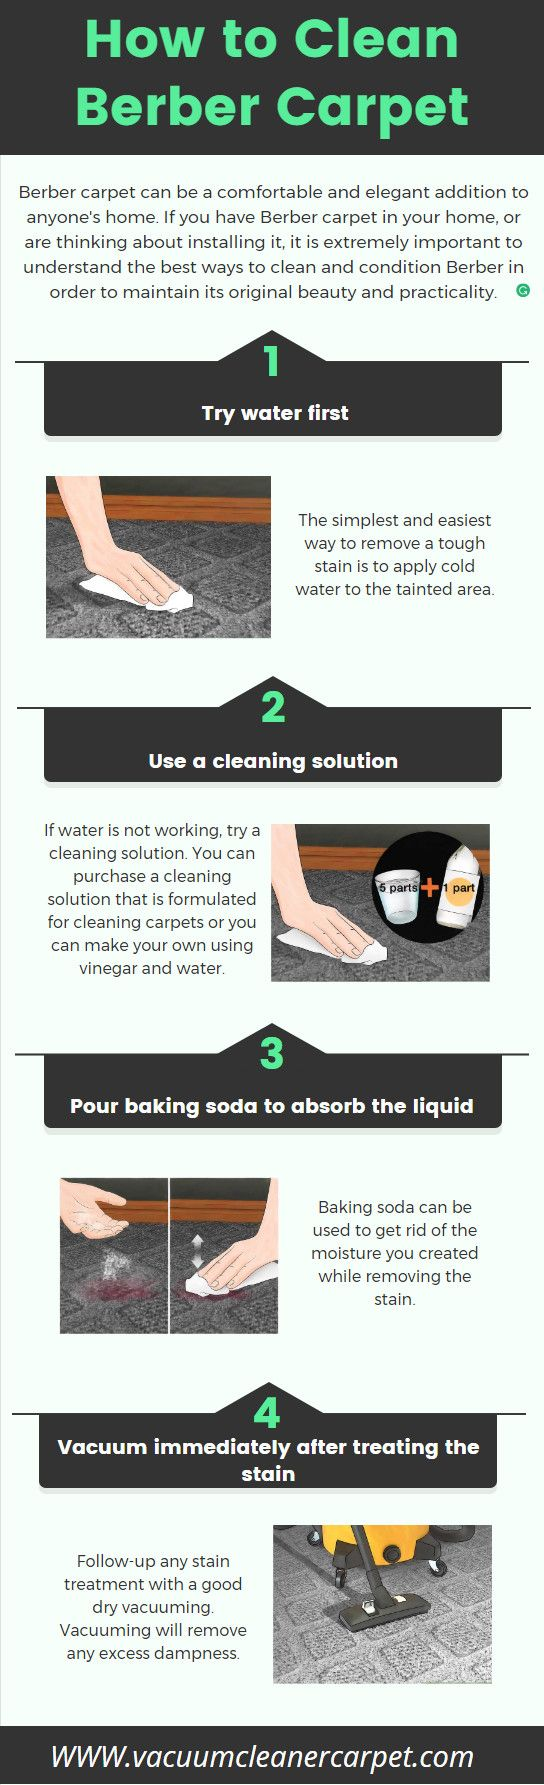 Steps for Stain Removing Method to #CleanBerberCarpet https://vacuumcleanercarpet.com/best-vacuum-cleaner-berber-carpet-reviews/ #Bebercarpet makes your home's carpet very attractive, that you know. But, it is quite hard to maintain it. The Berber carpets are made out of nylon, wool or olefin. There are many ways to clean it. In this infographic, you will see the steps for stain removing method to clean your Berber carpet.